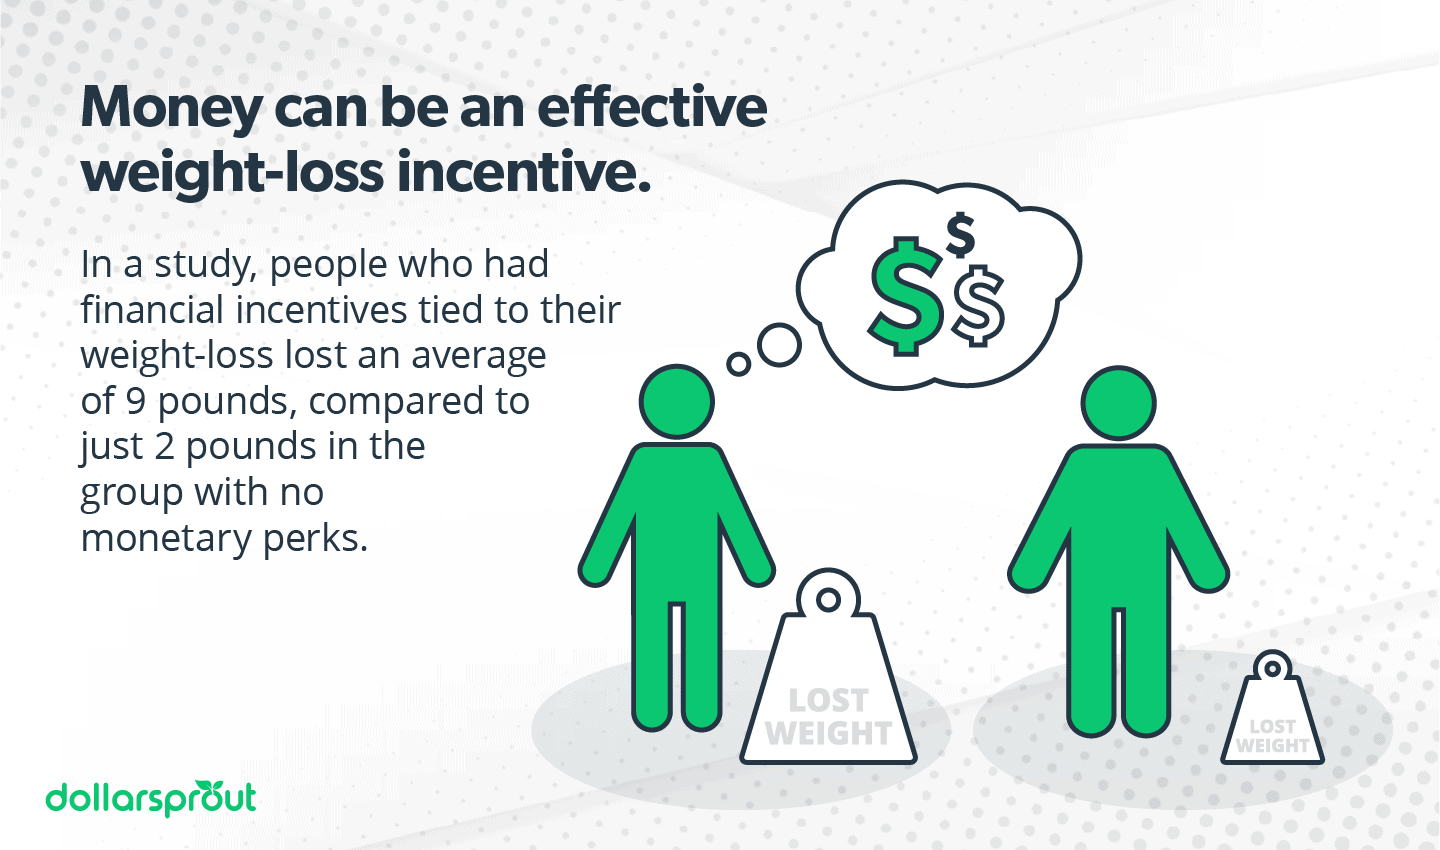 Money can be an effective weight-loss incentive